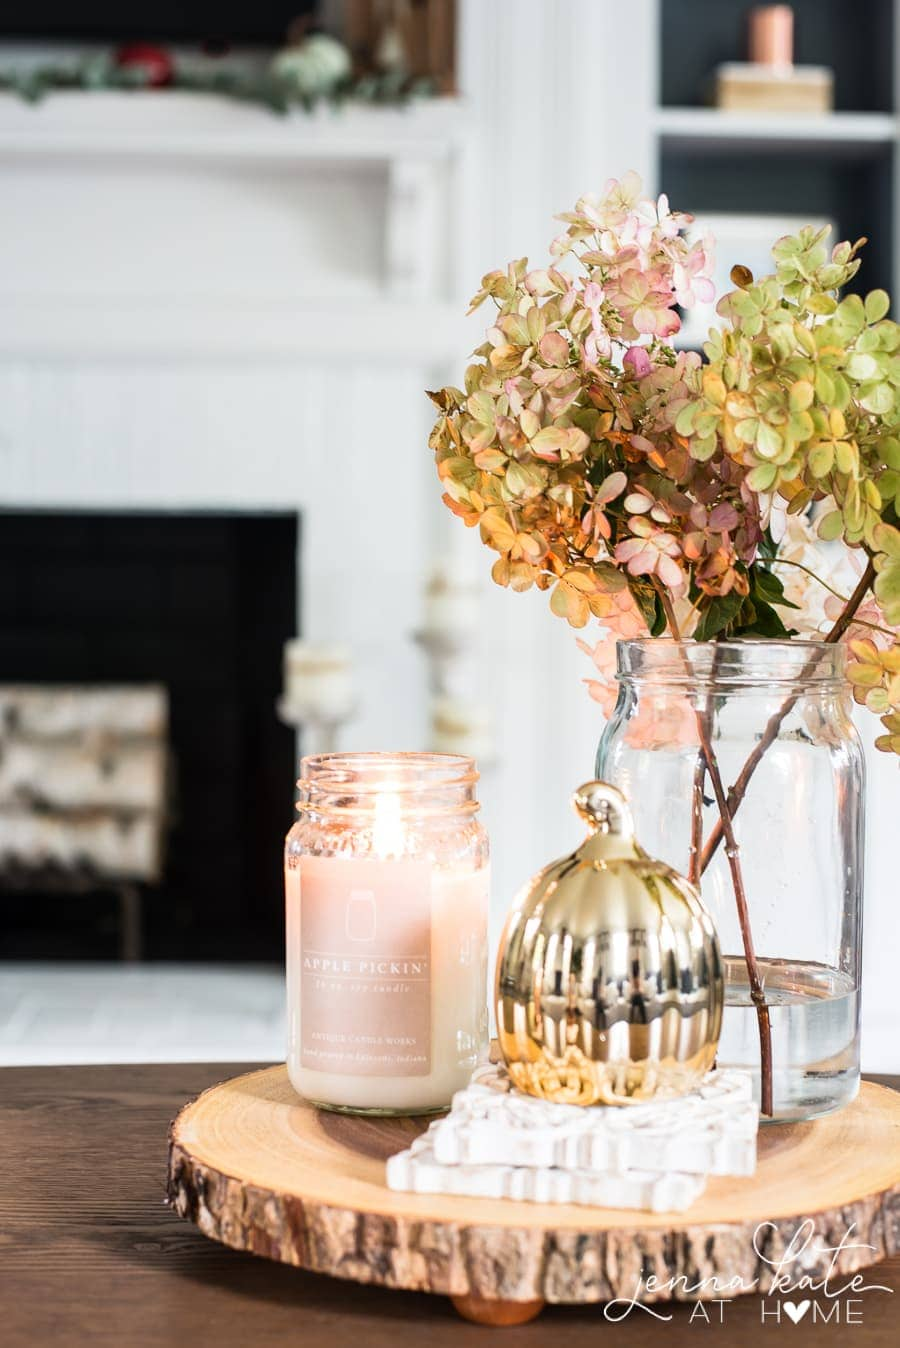 Dried hydrangeas in a vase are a free way to decorate with natural elements for fall